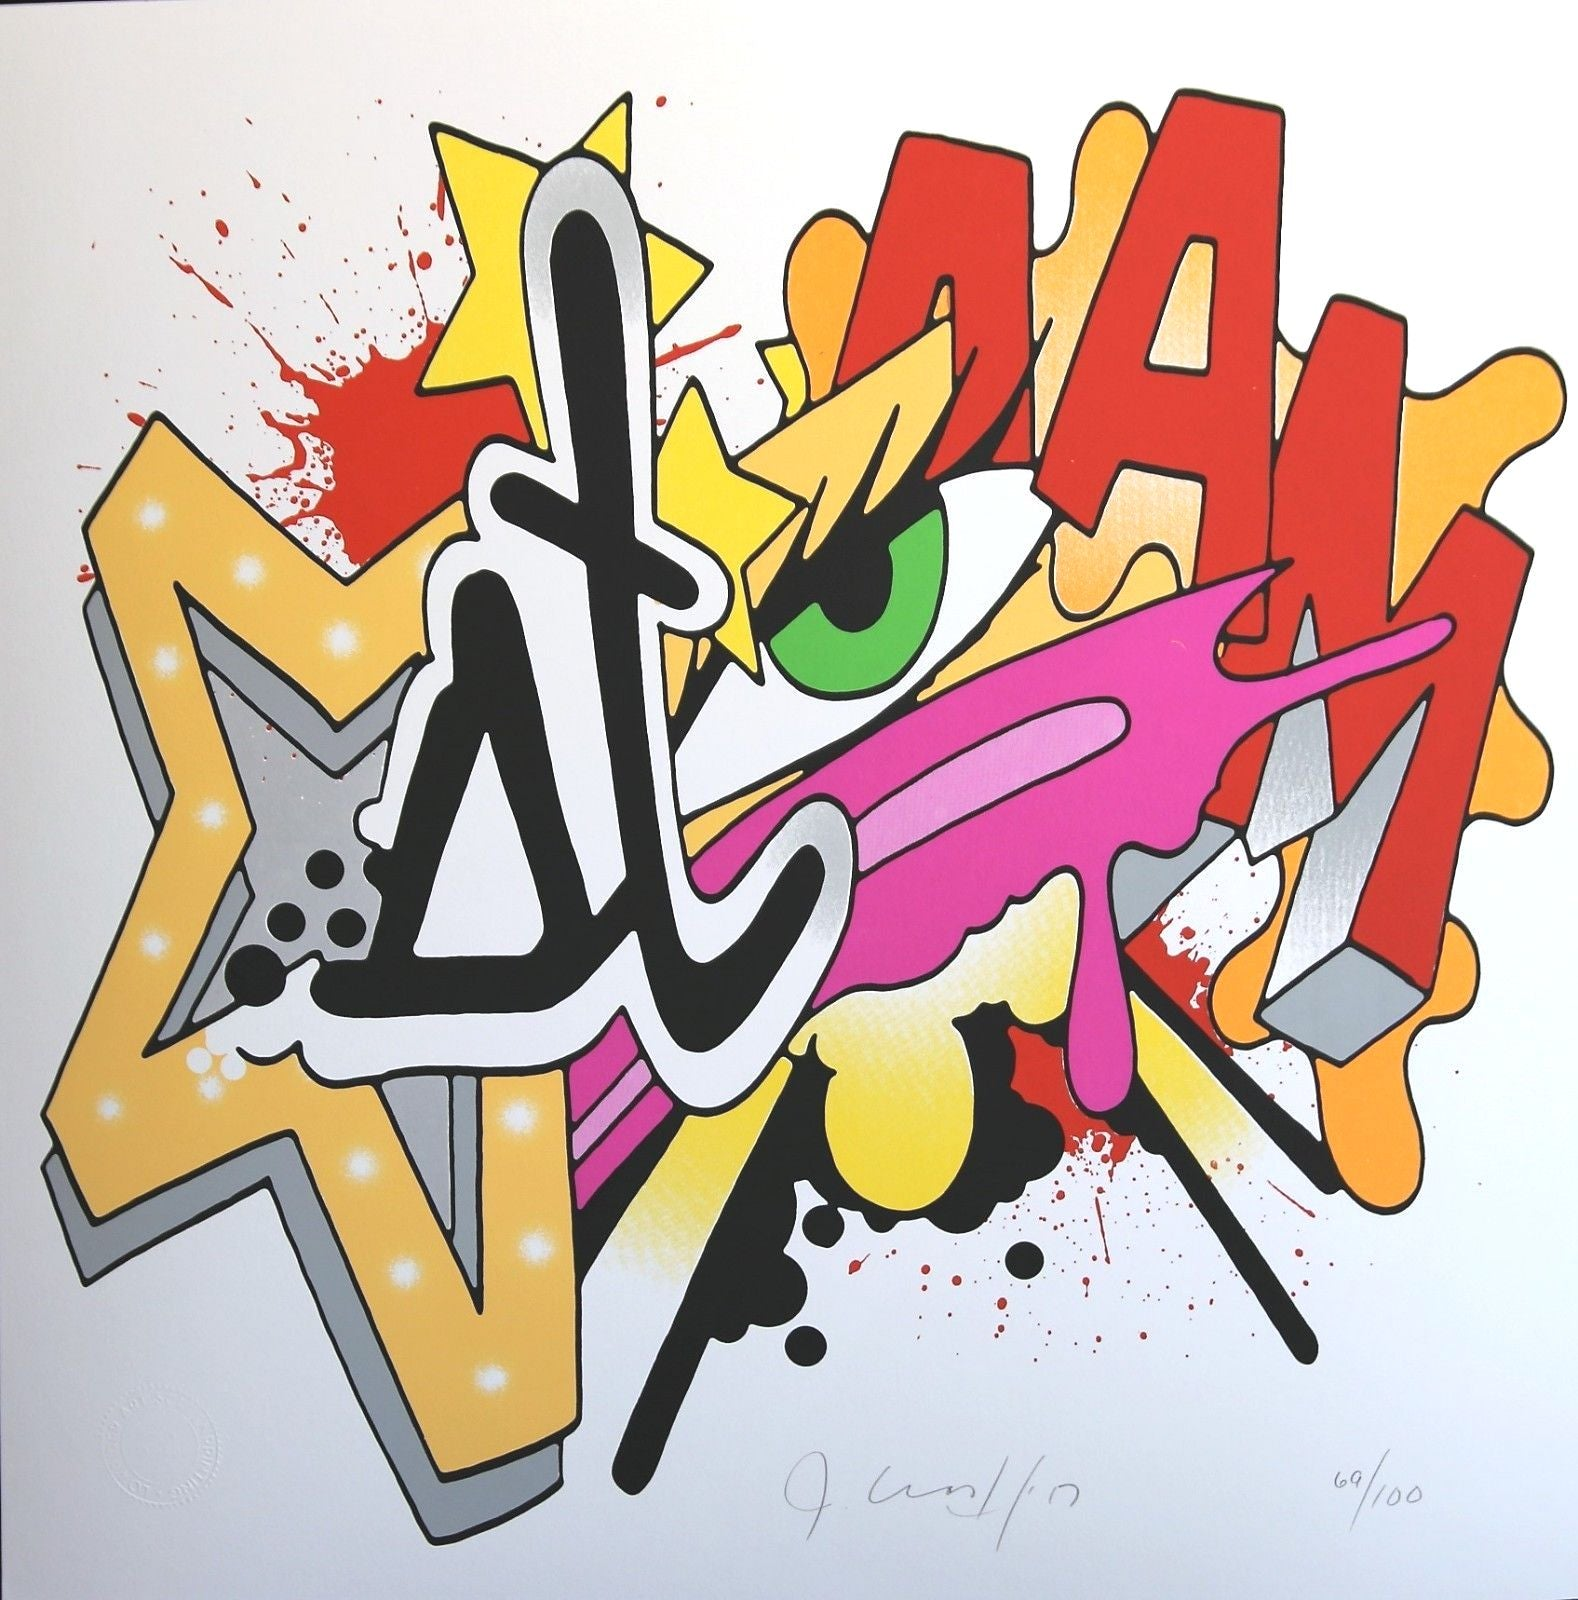 Layered burst of chunky graffiti, we can make out an eye, a star, a splatter, and some letters